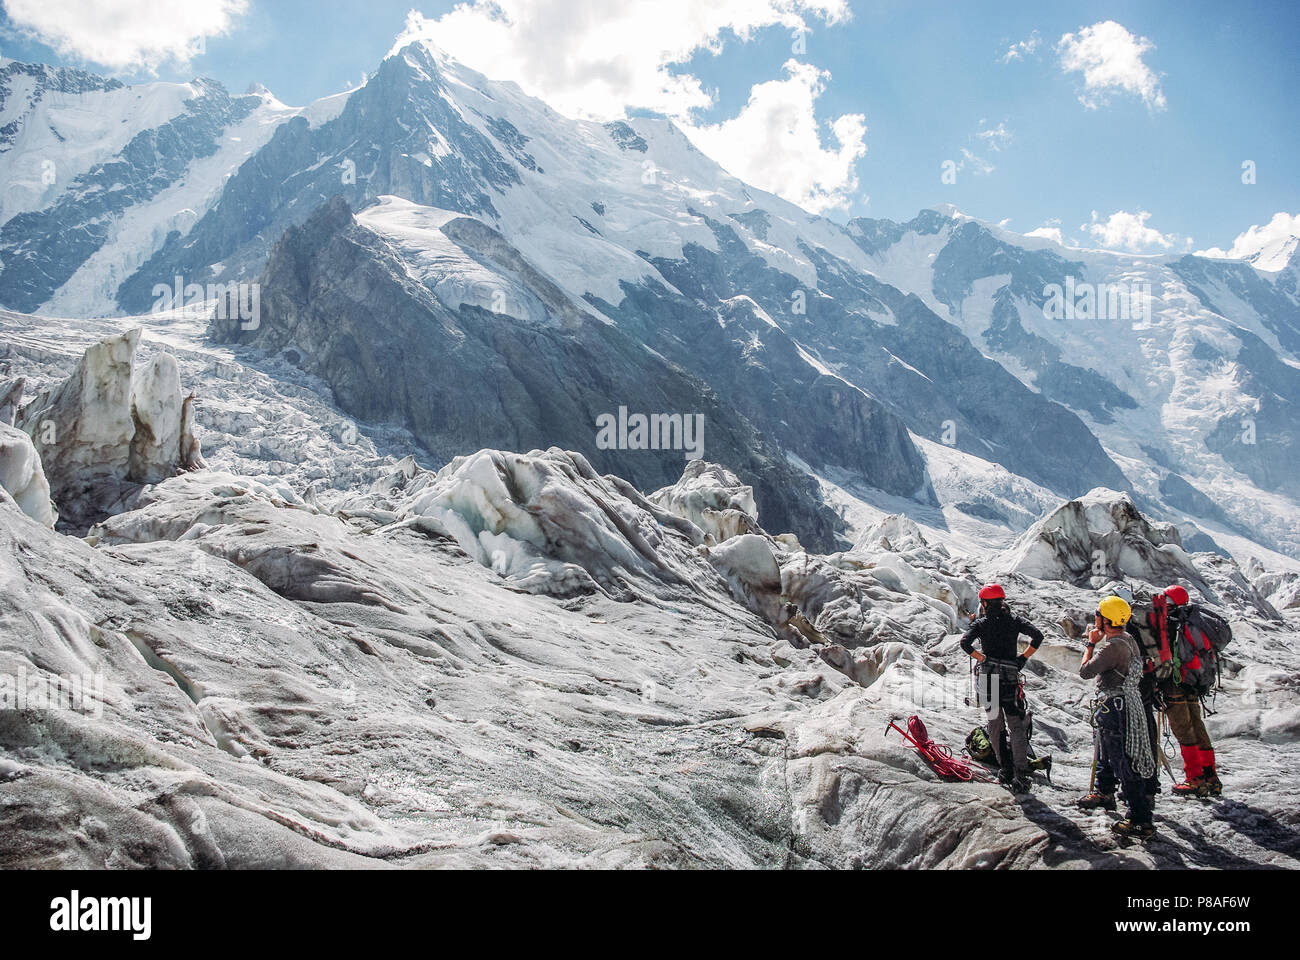 hikers standing and looking at beautiful mountains, Russian Federation, Caucasus, July 2012 - Stock Image